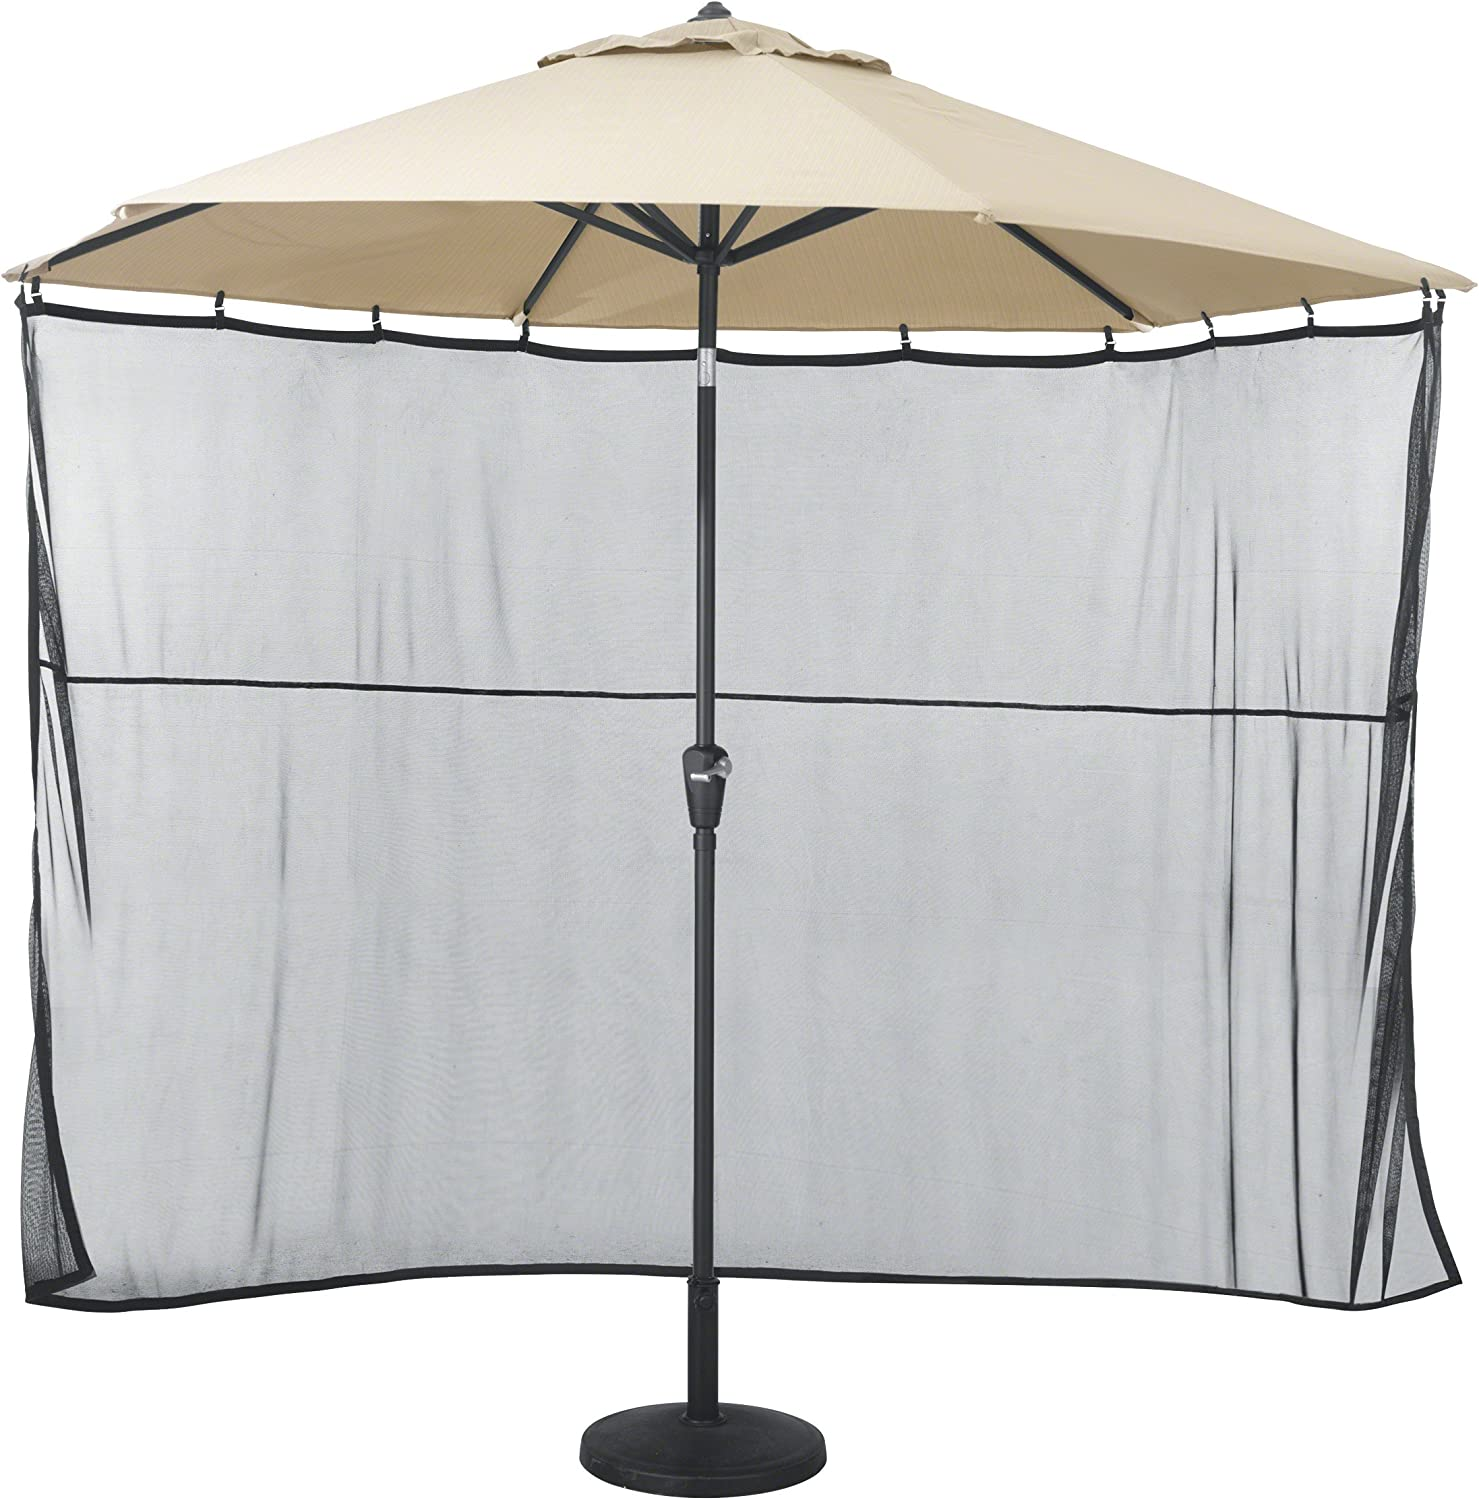 Classic Accessories Water-Resistant 68 Inch Universal Patio Umbrella Shade Screen